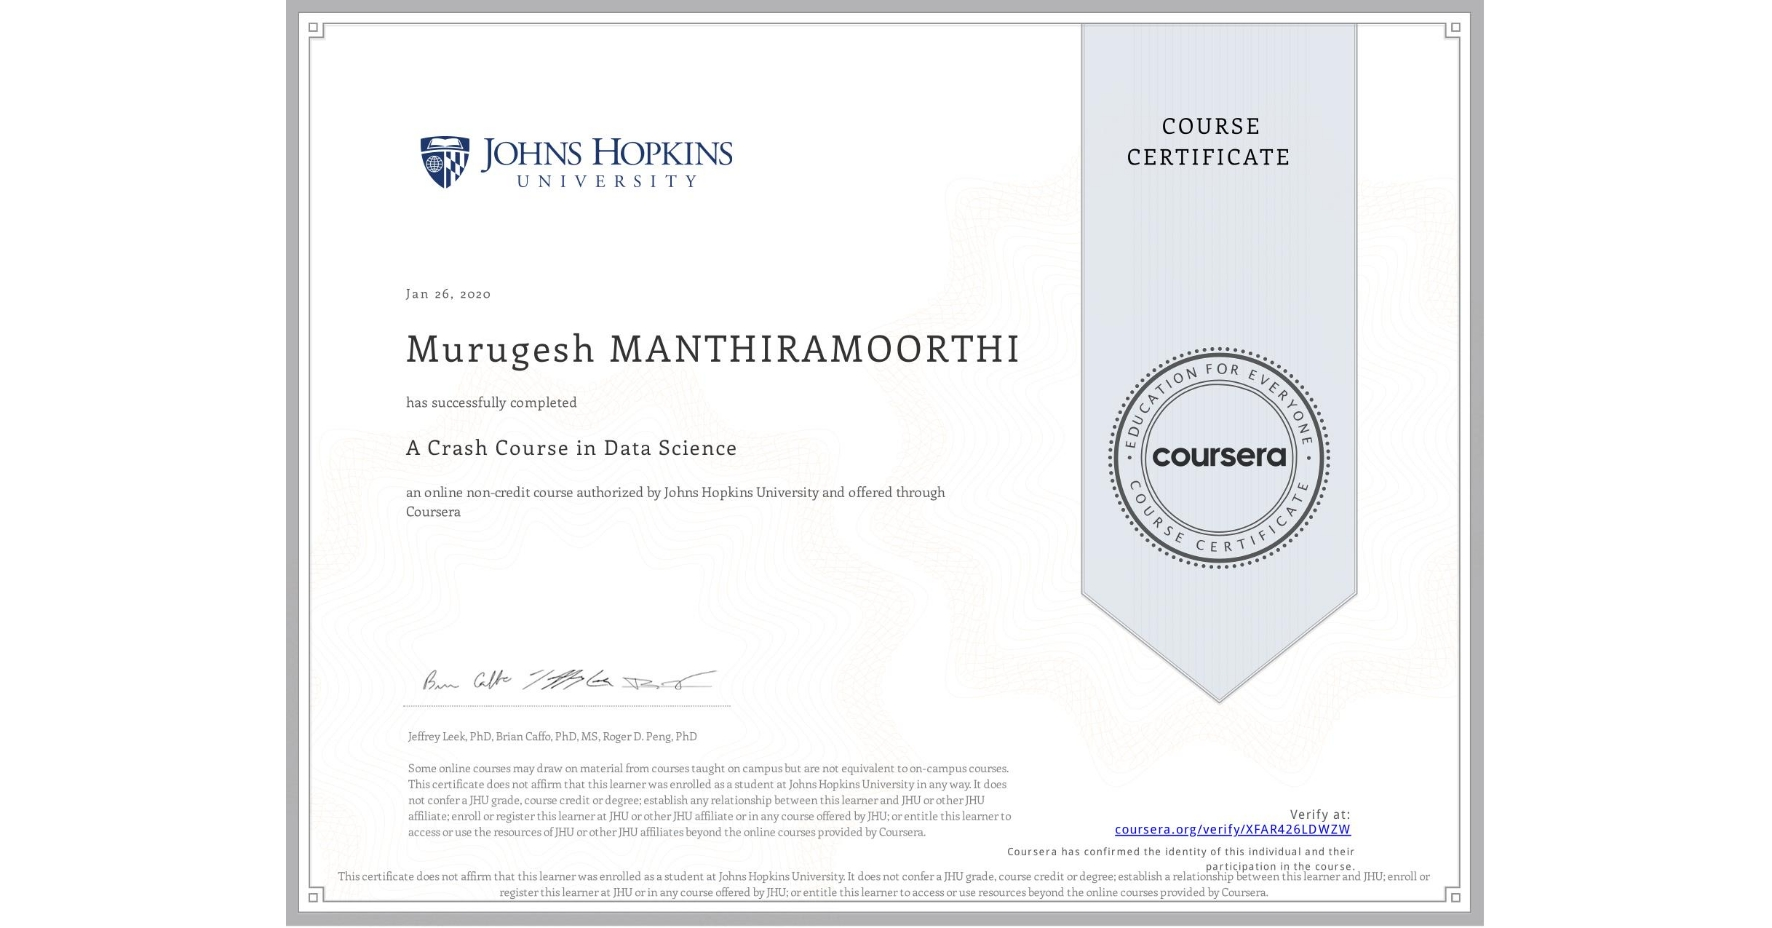 View certificate for Murugesh Manthiramoorthi, A Crash Course in Data Science, an online non-credit course authorized by Johns Hopkins University and offered through Coursera